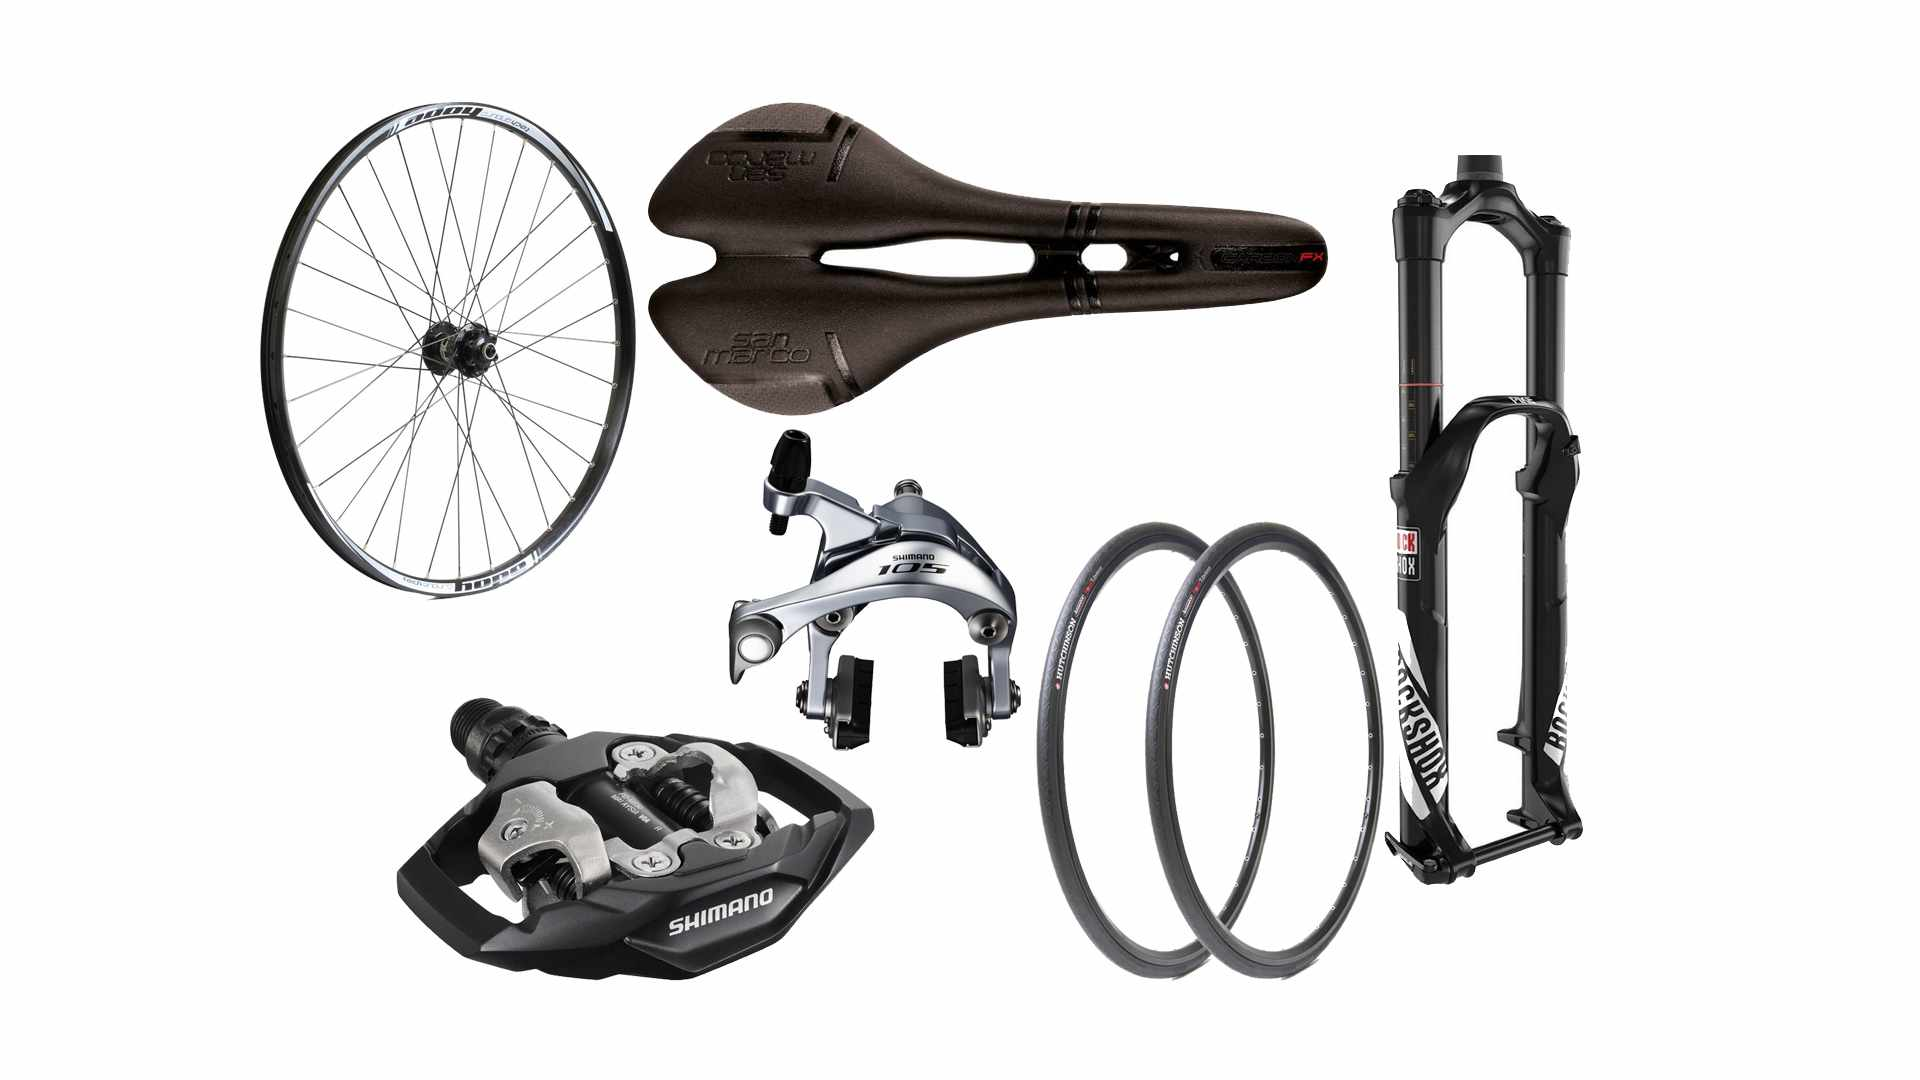 Collage of a bike wheel, saddle, pedal, tyres, suspension fork and silver brake callipers